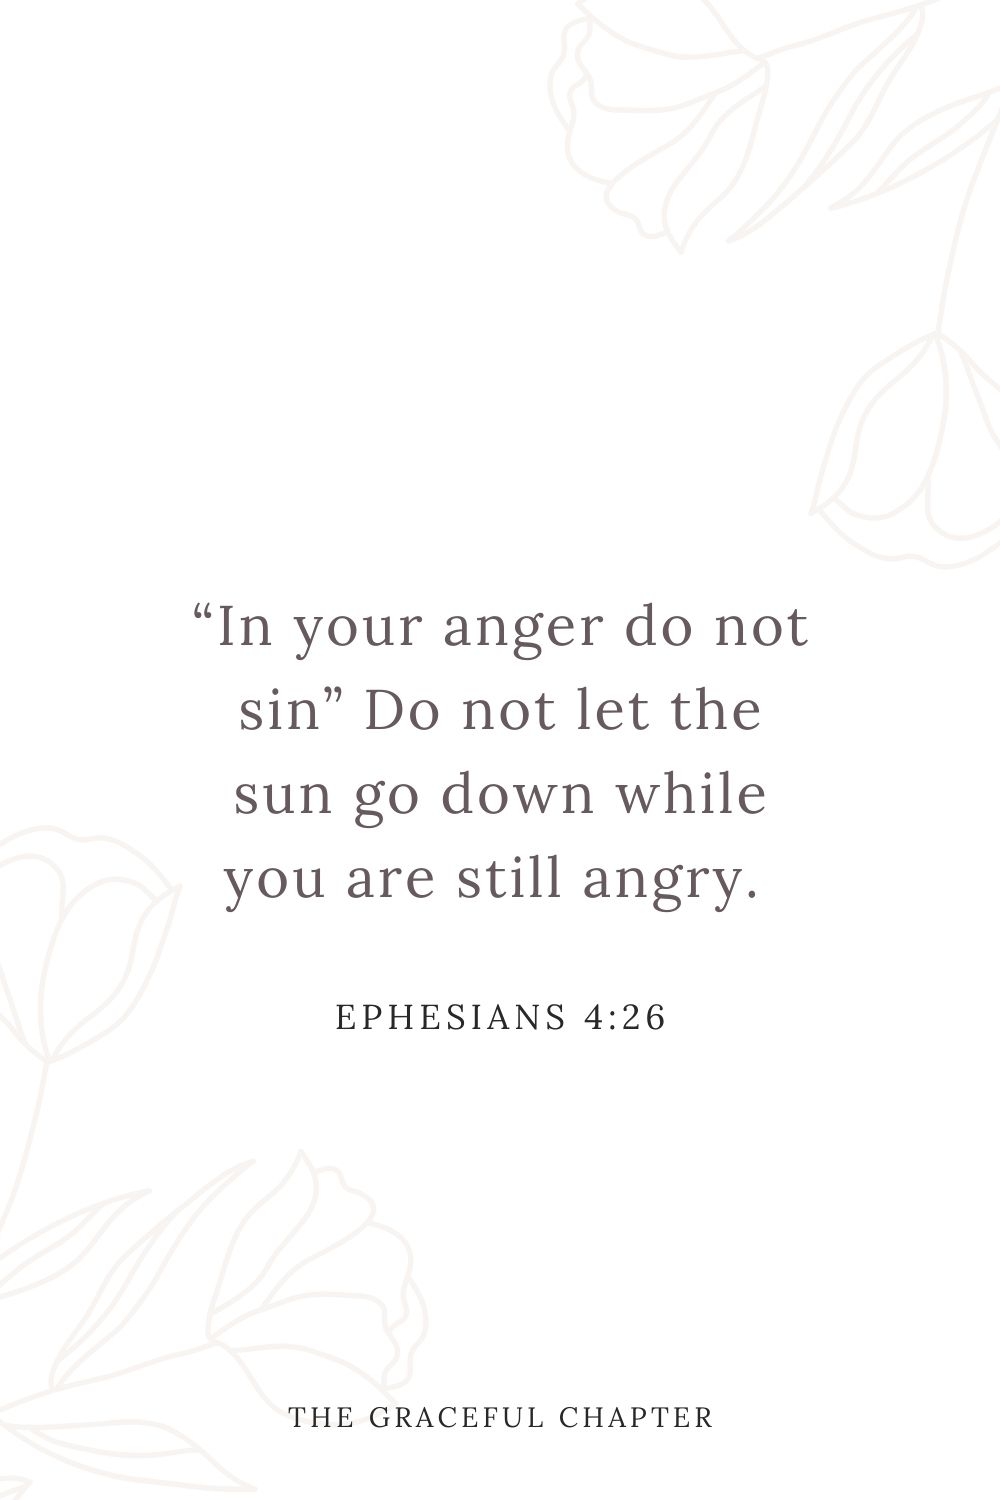 """In your anger do not sin"" Do not let the sun go down while you are still angry. Ephesians 4:26"